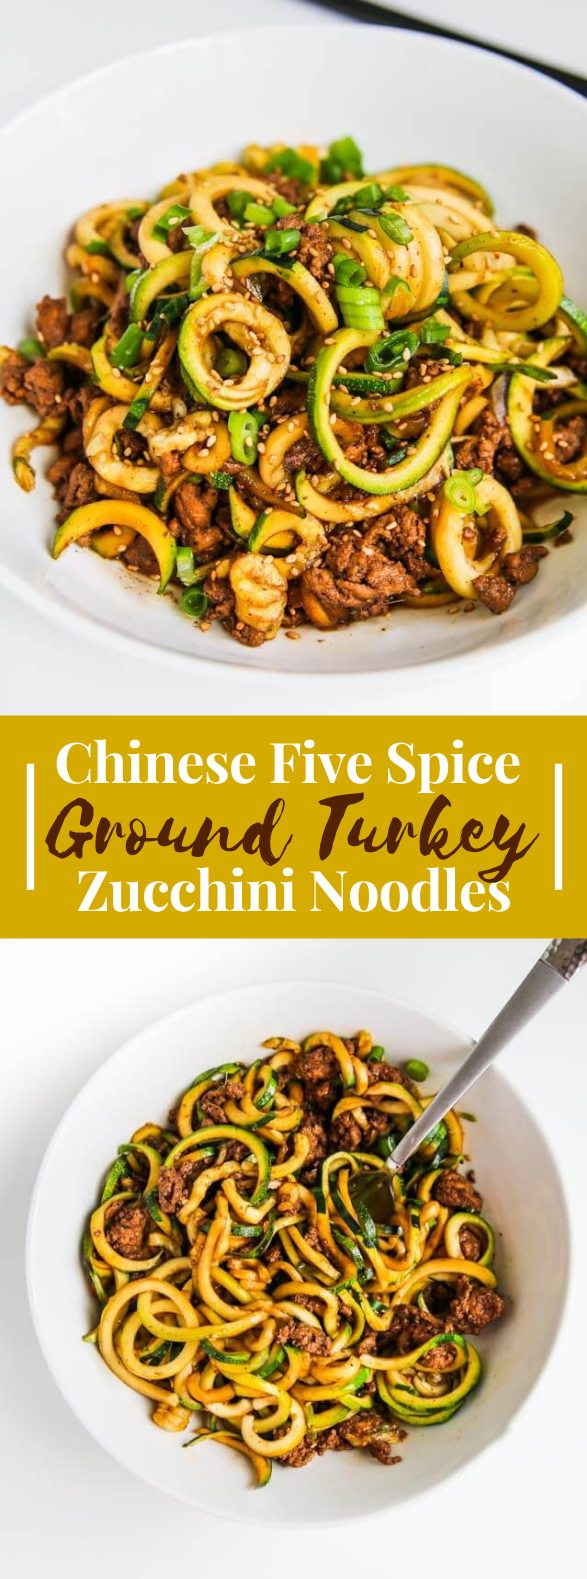 CHINESE FIVE SPICE GROUND TURKEY ZUCCHINI NOODLES RECIPE #lowcarb #healthydinner